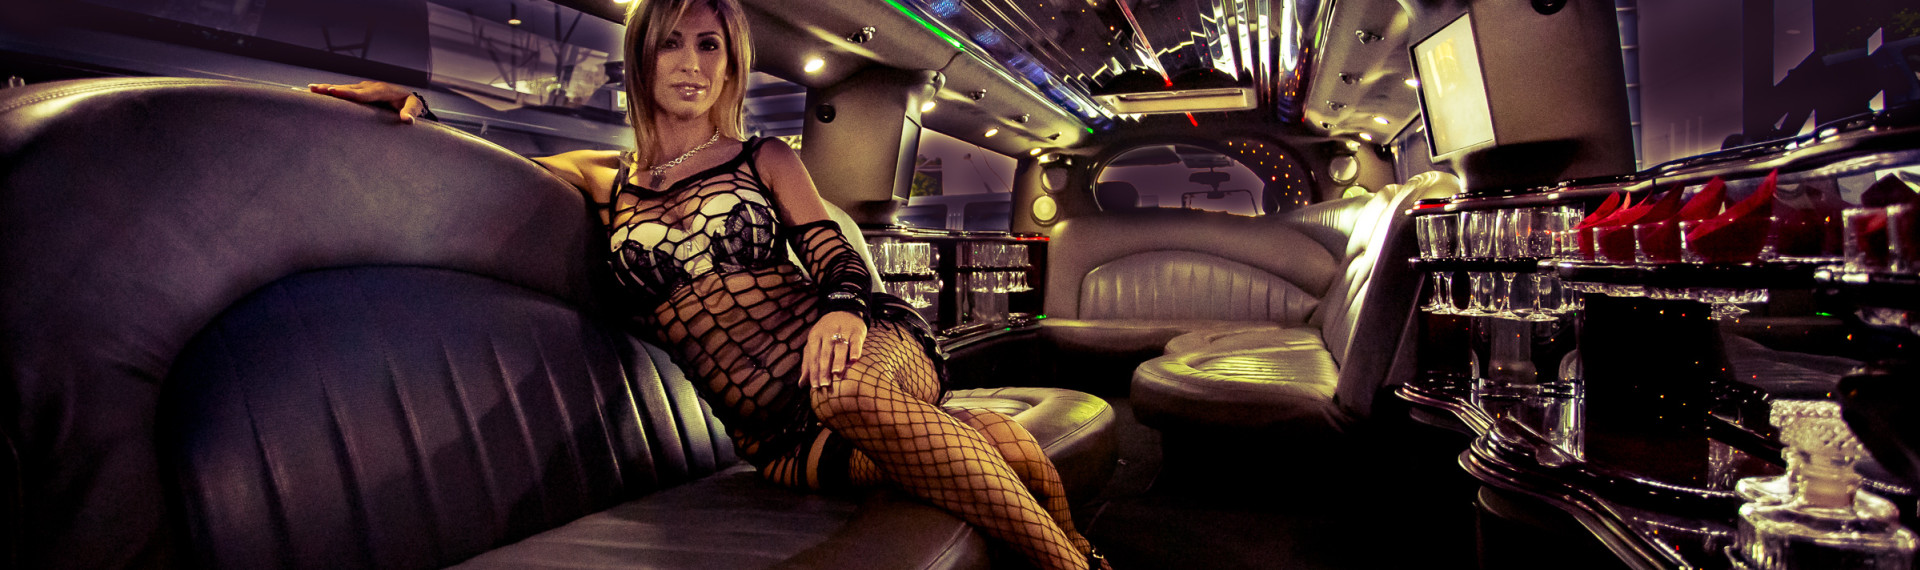 Strip Limo Prague | Pissup | Expert Party Planners since 2001